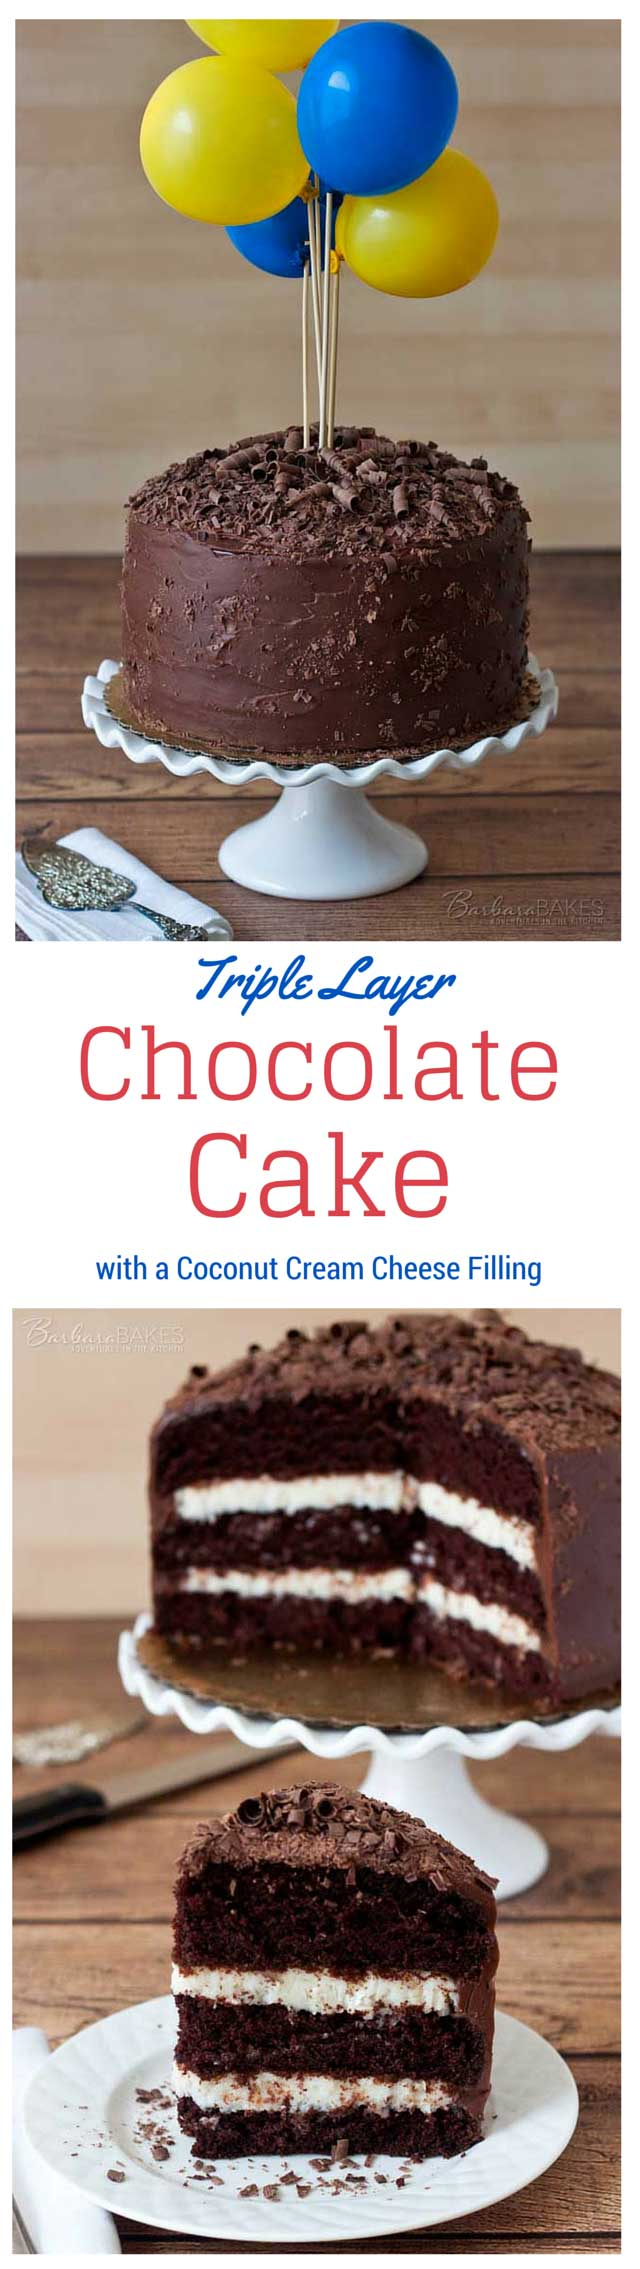 Triple-Chocolate-Layer-Cake-with-Coconut-Cream-Cheese-Filling-Collage